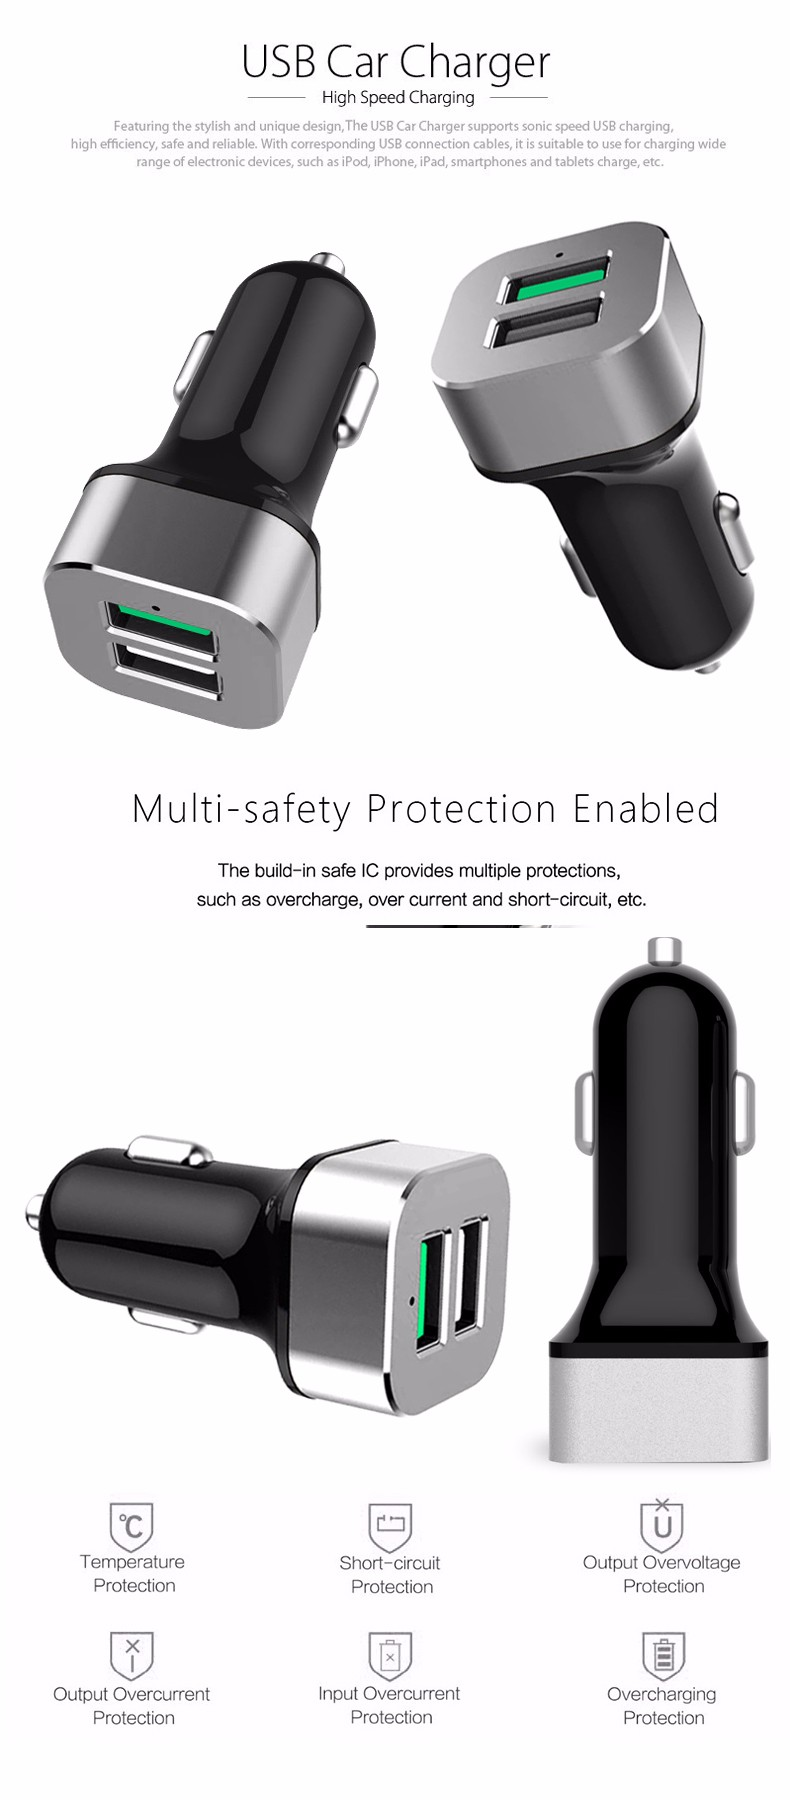 SEGSI Quick Charge Dual USB Car Charger usb 2 QC 3.0 Fast Charger Adapter for iPhone iPad Samsung HTC Xiaomi QC2.0 Compatible